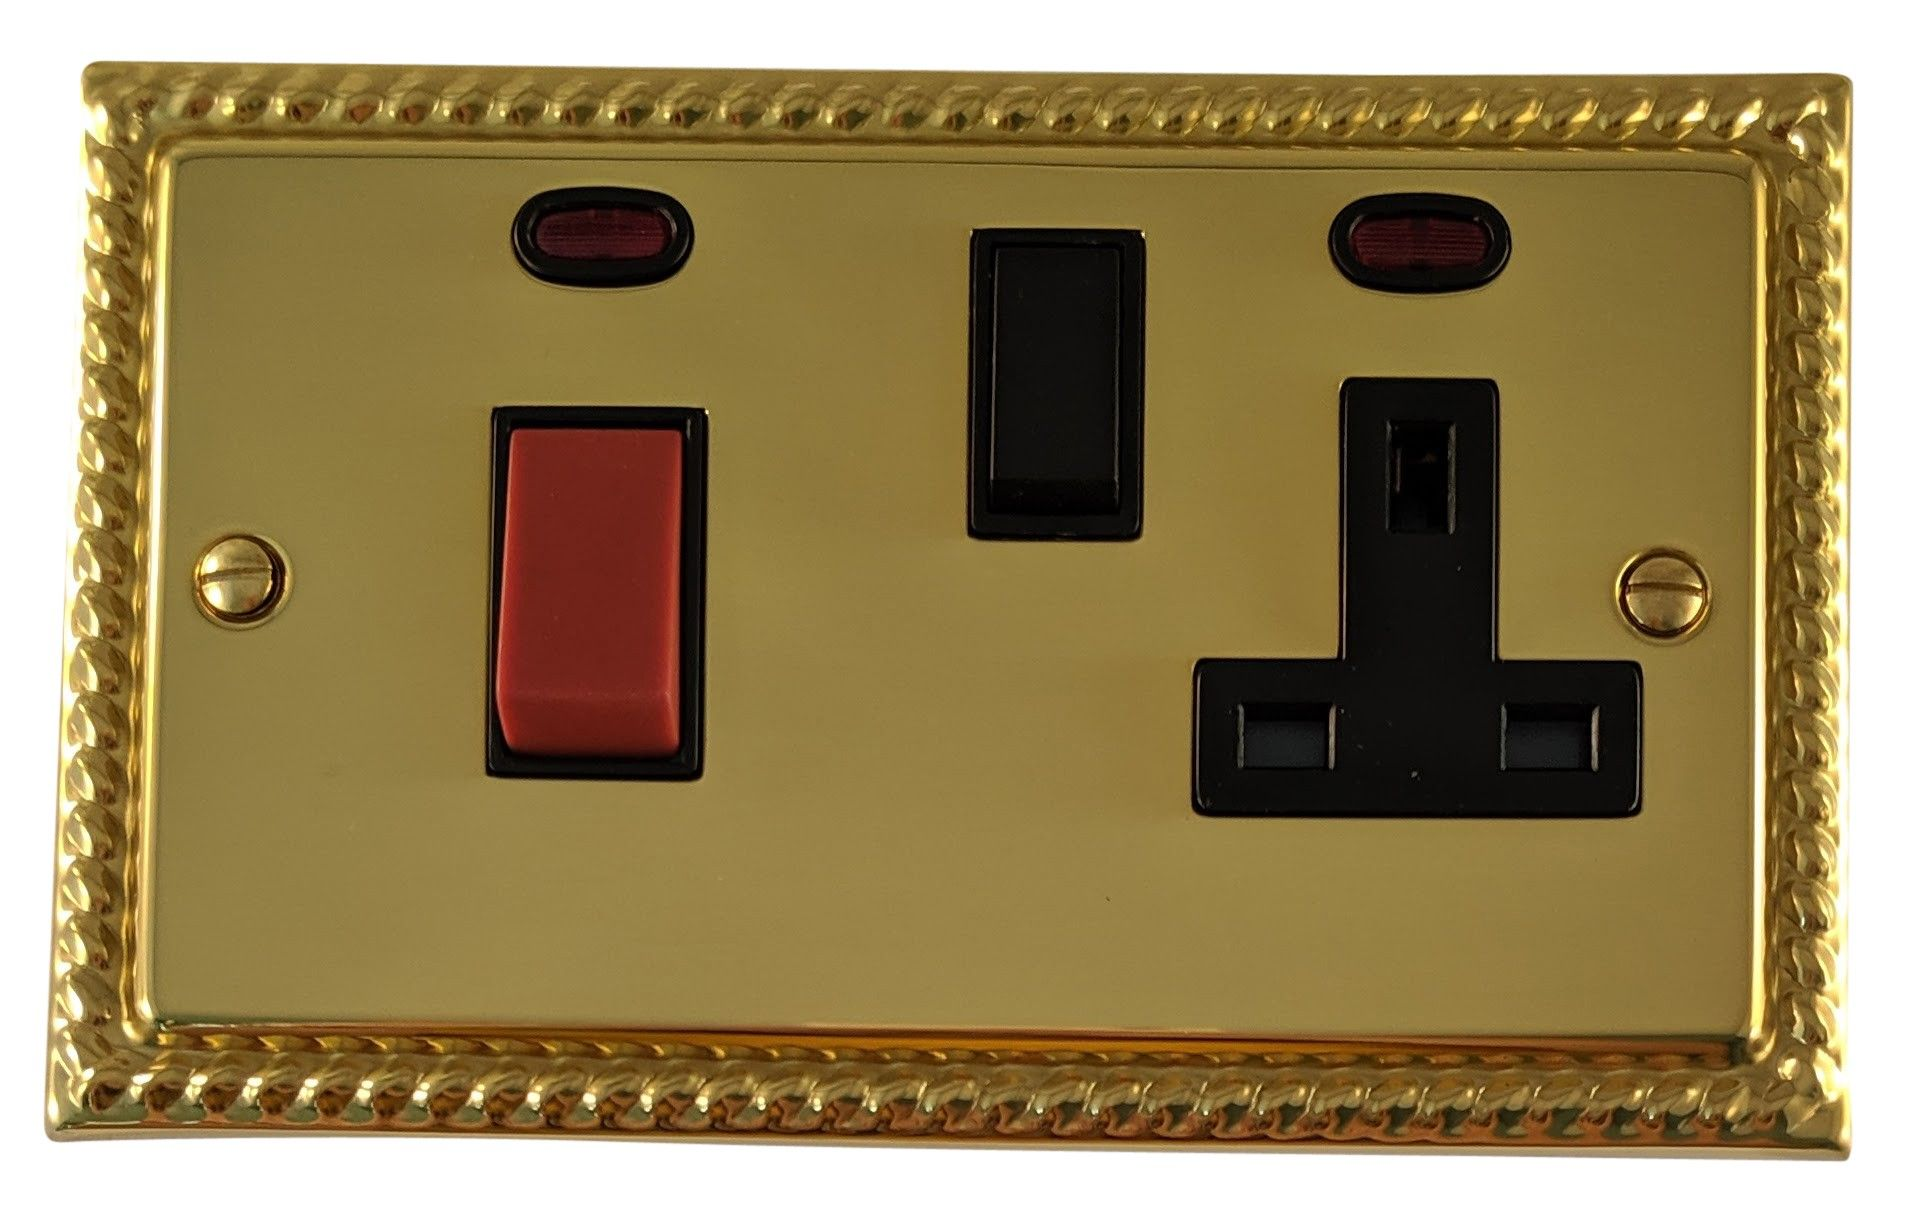 G&H MB29B Monarch Roped Polished Brass 45 Amp DP Cooker Switch & 13A Switched Socket